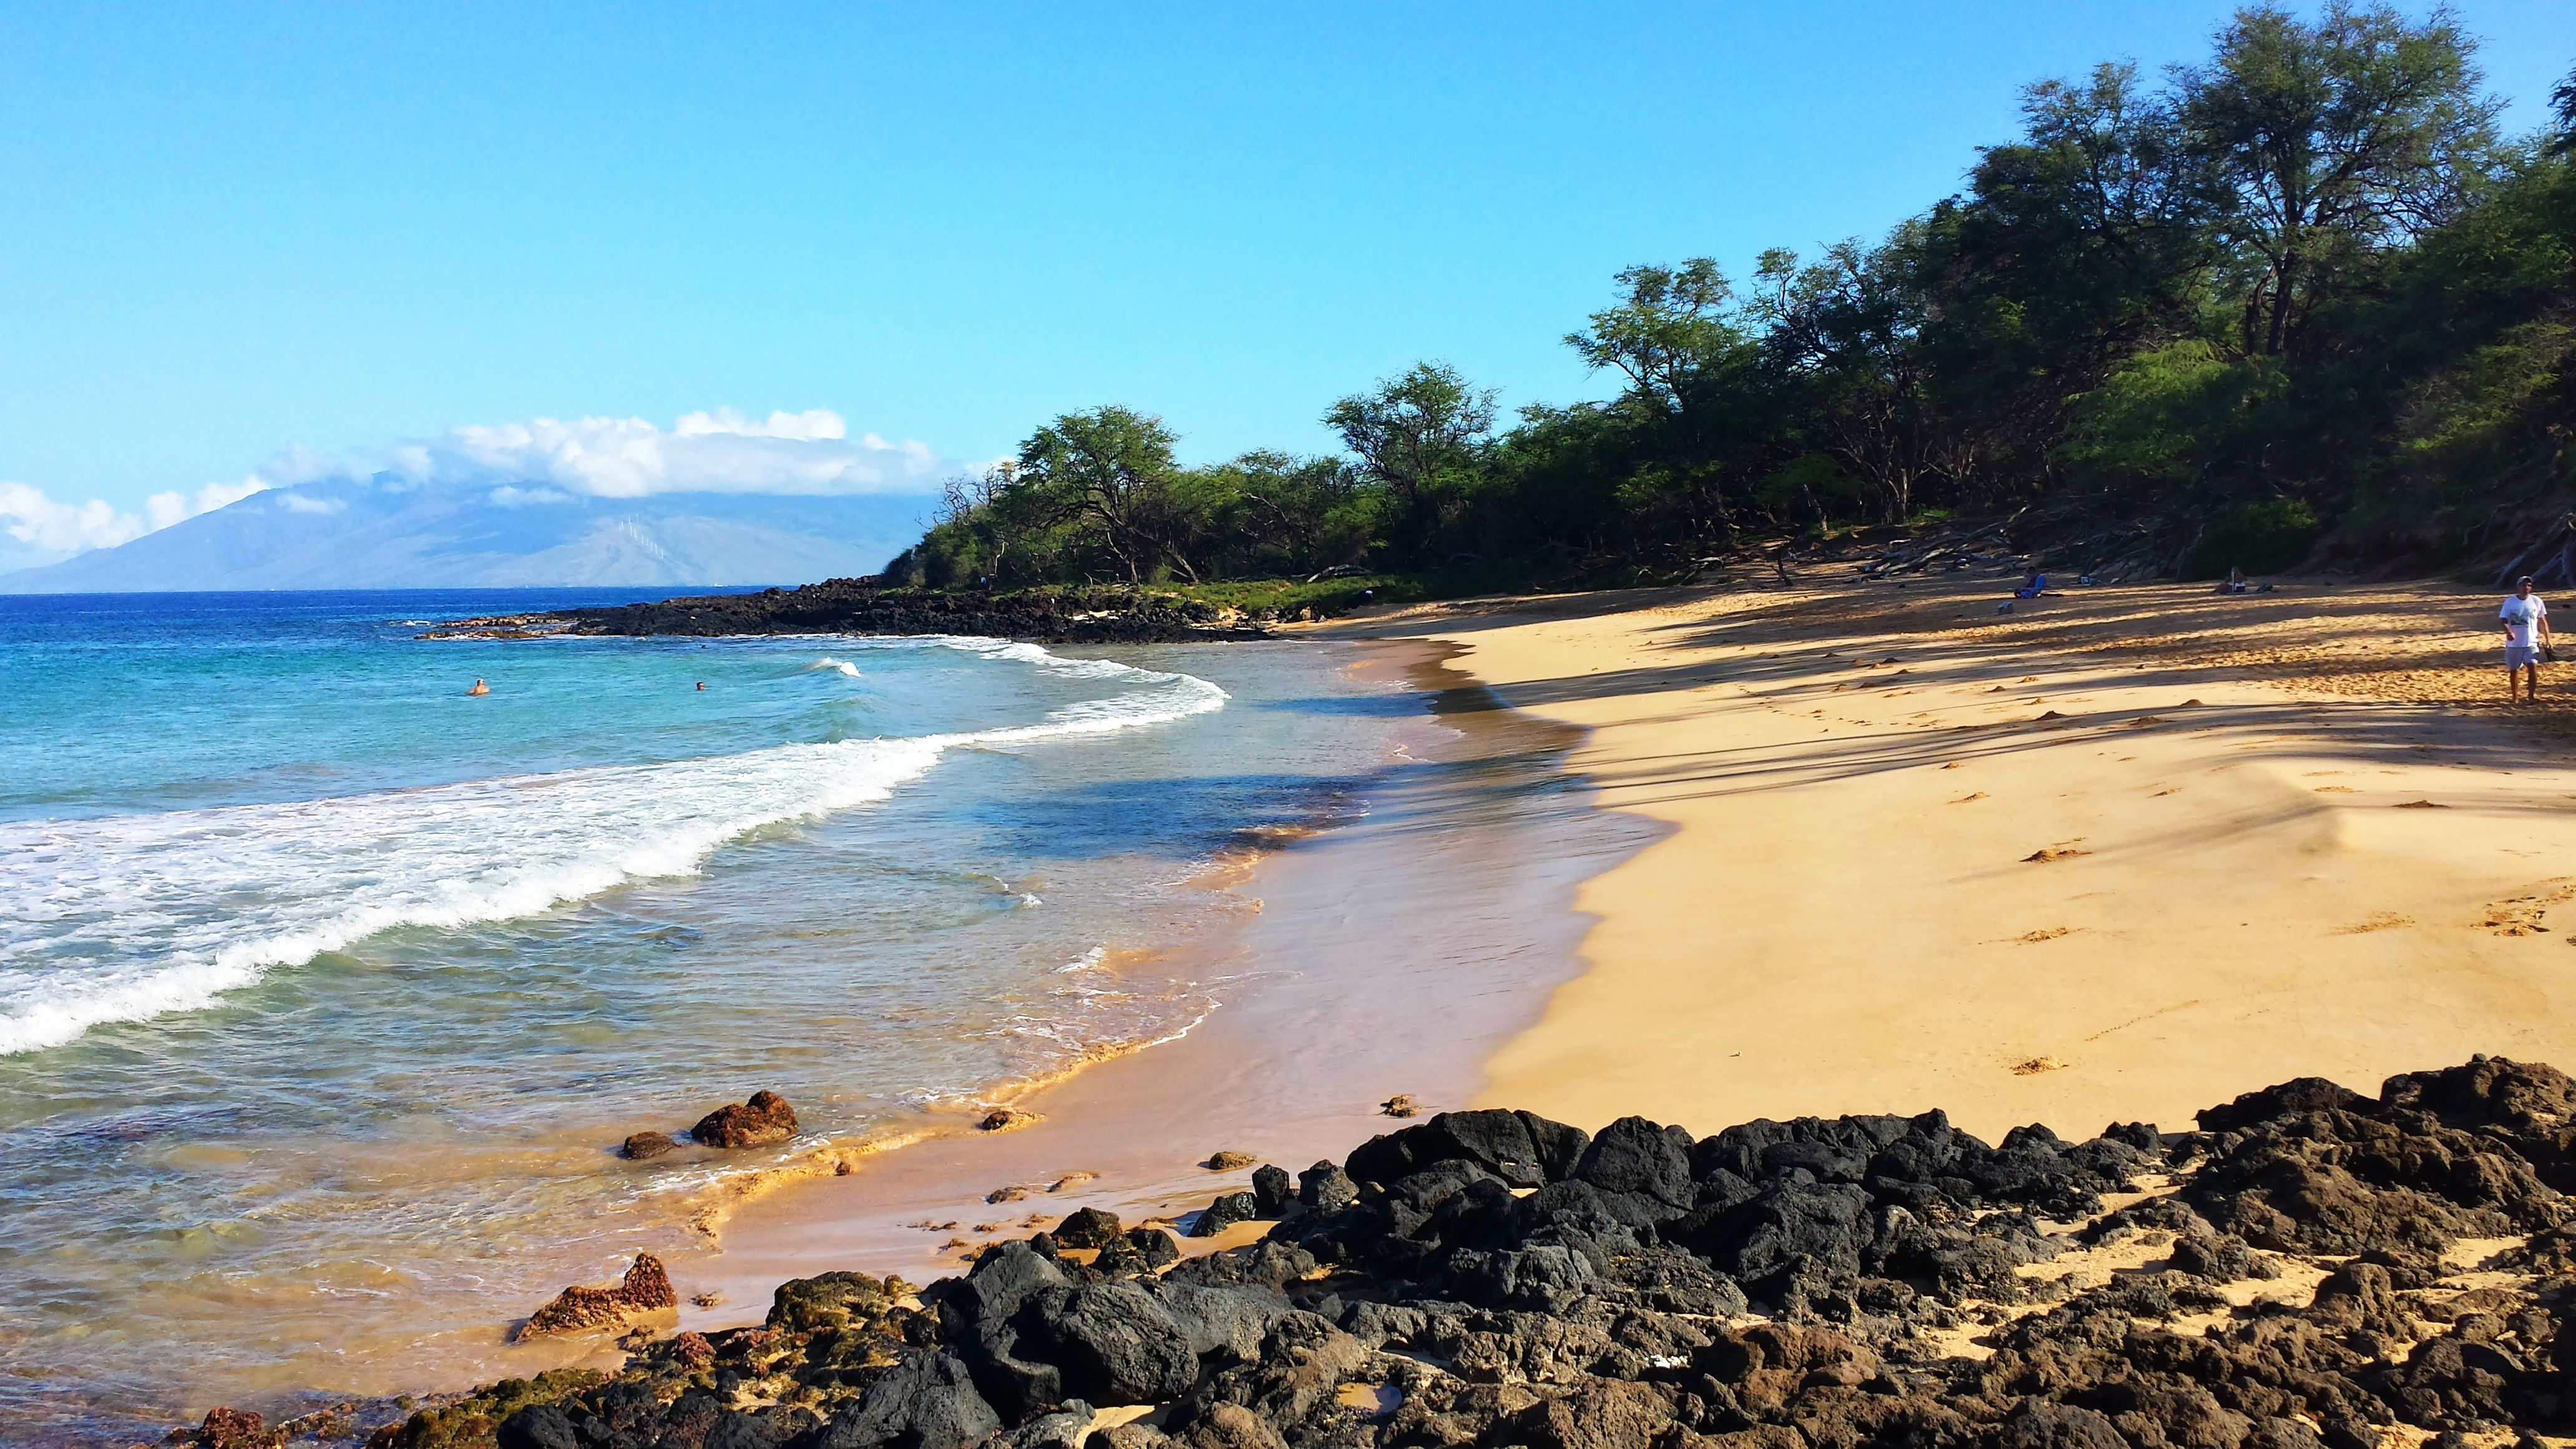 Maui Beach Weather Report